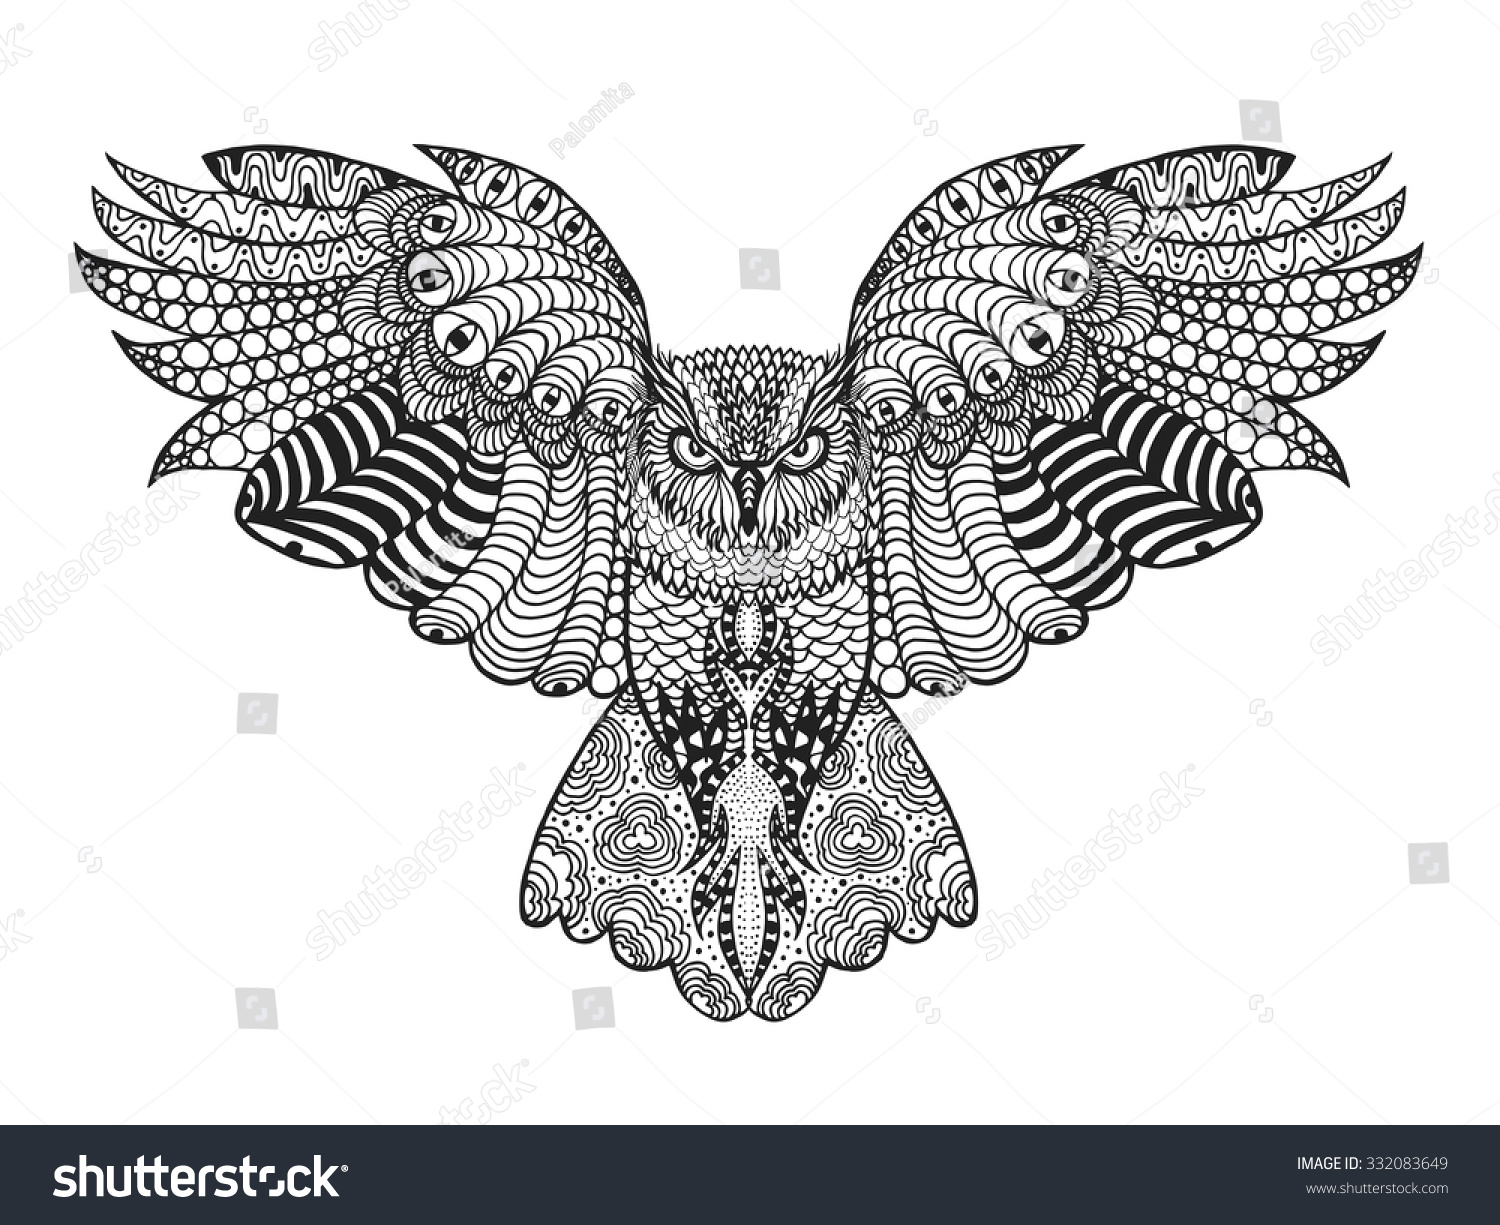 Owl Pictures Black And White Stock Photos Images amp